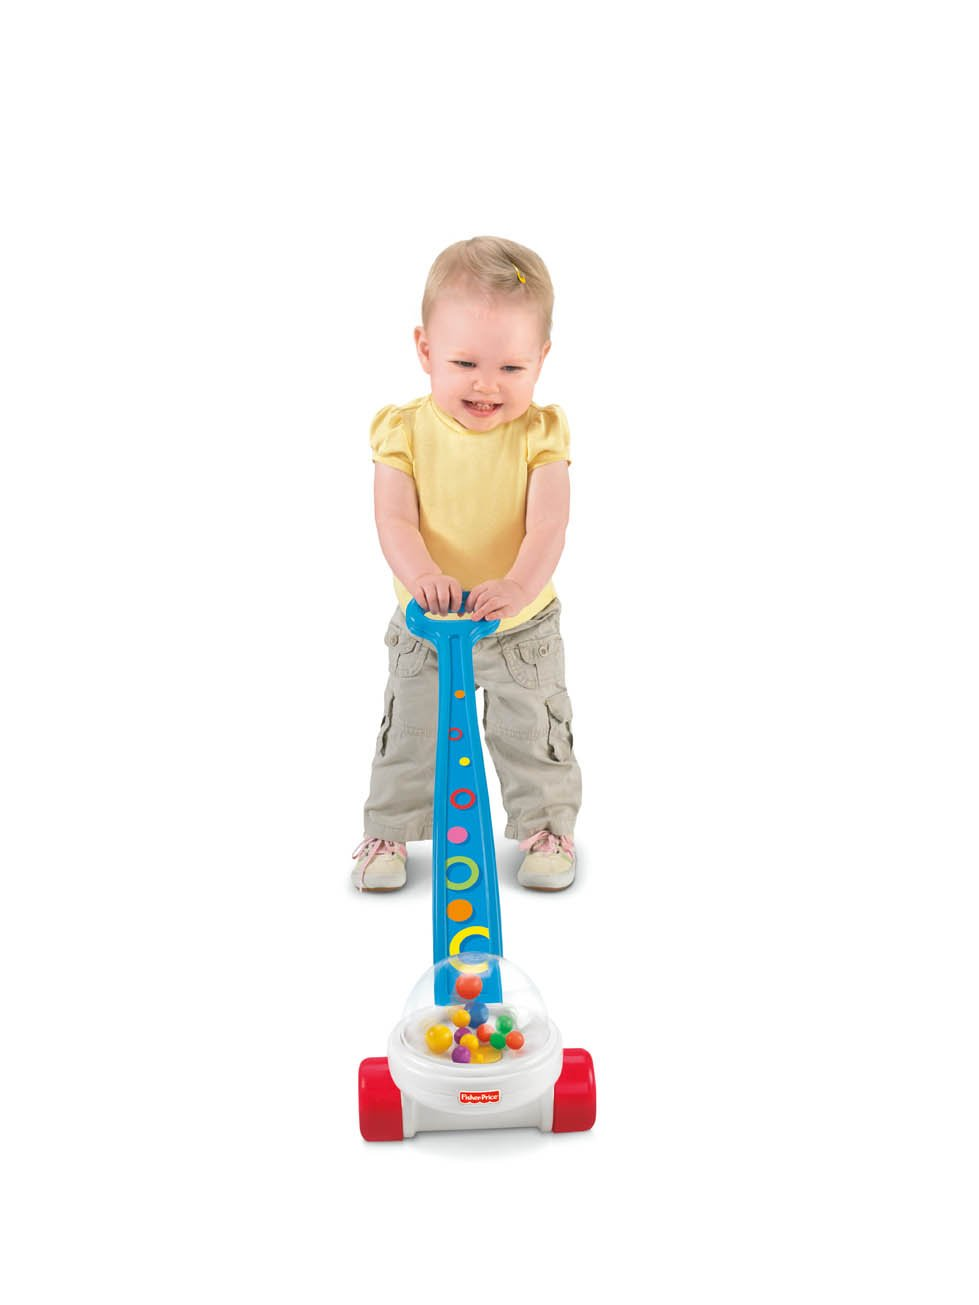 Boy Toys Age 1 2 : Hot christmas gifts best toys for baby boys age — kathln